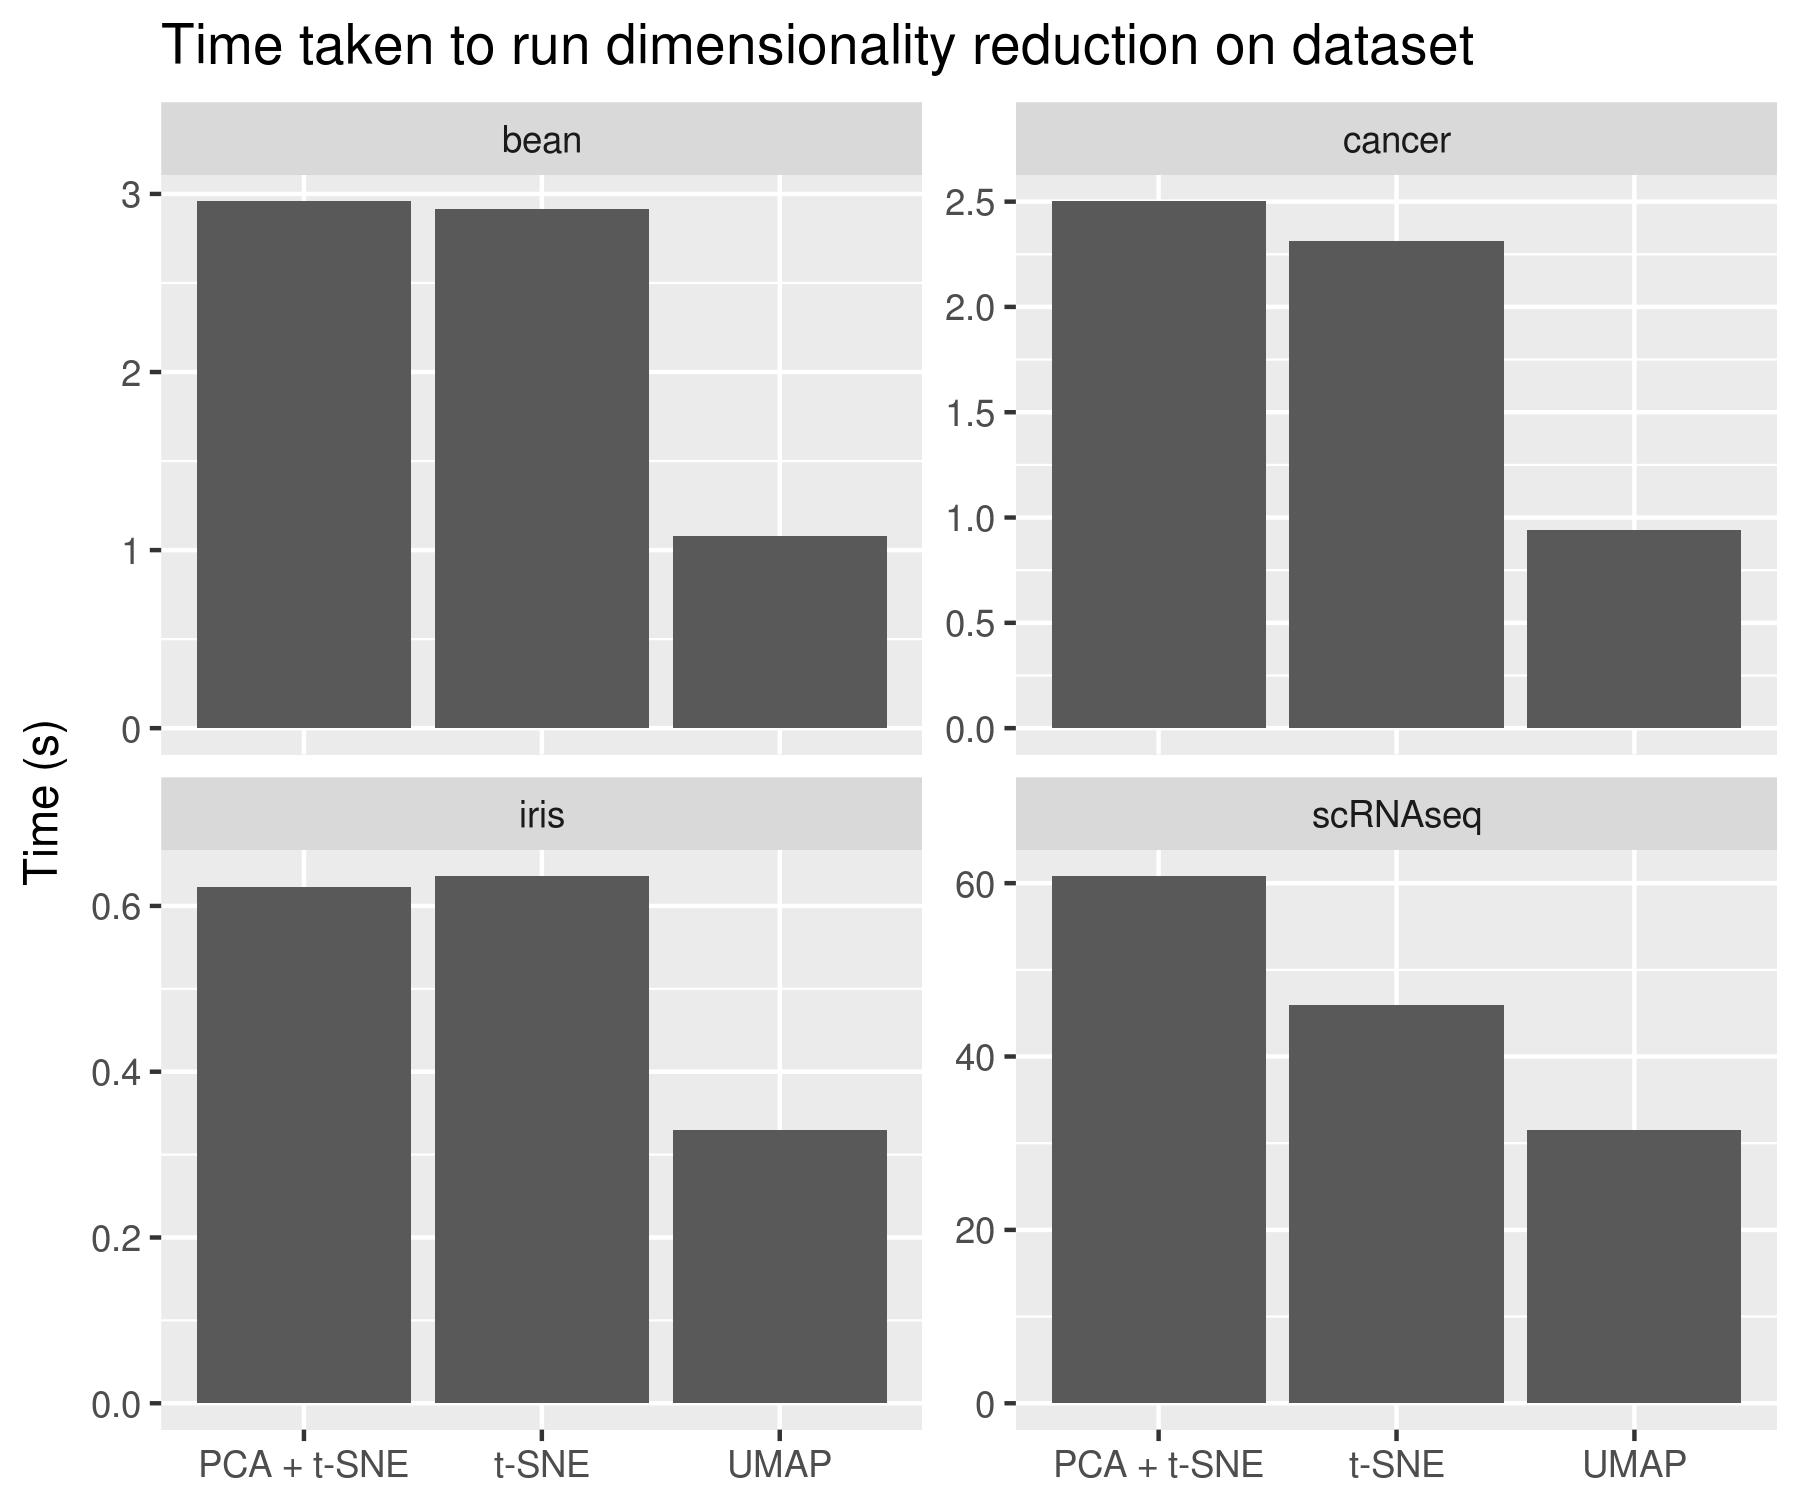 Execution time of UMAP compared to other algorithms